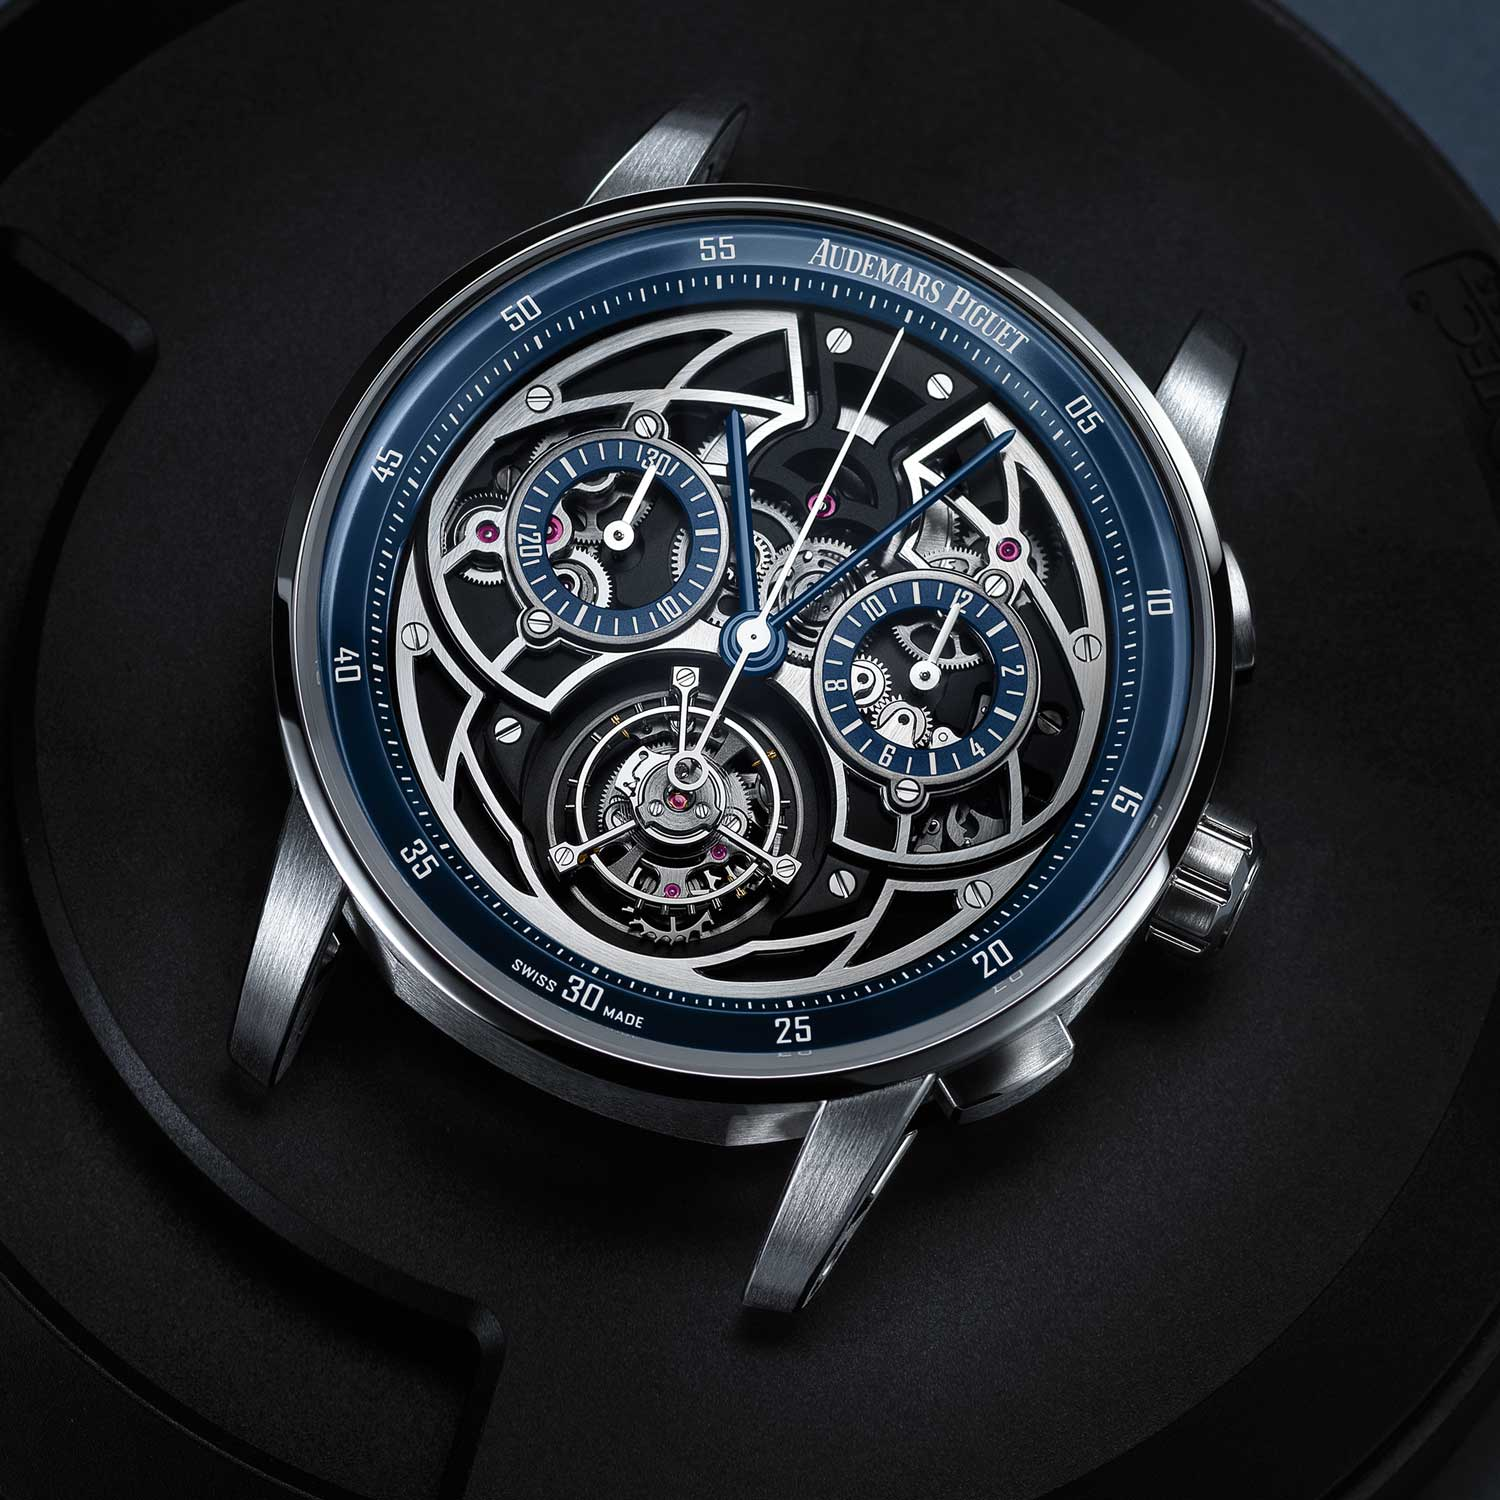 A closer look at the rhodium and black galvanic treated case of the Code 11.59 by Audemars Piguet Selfwinding Flying Tourbillon Chronograph